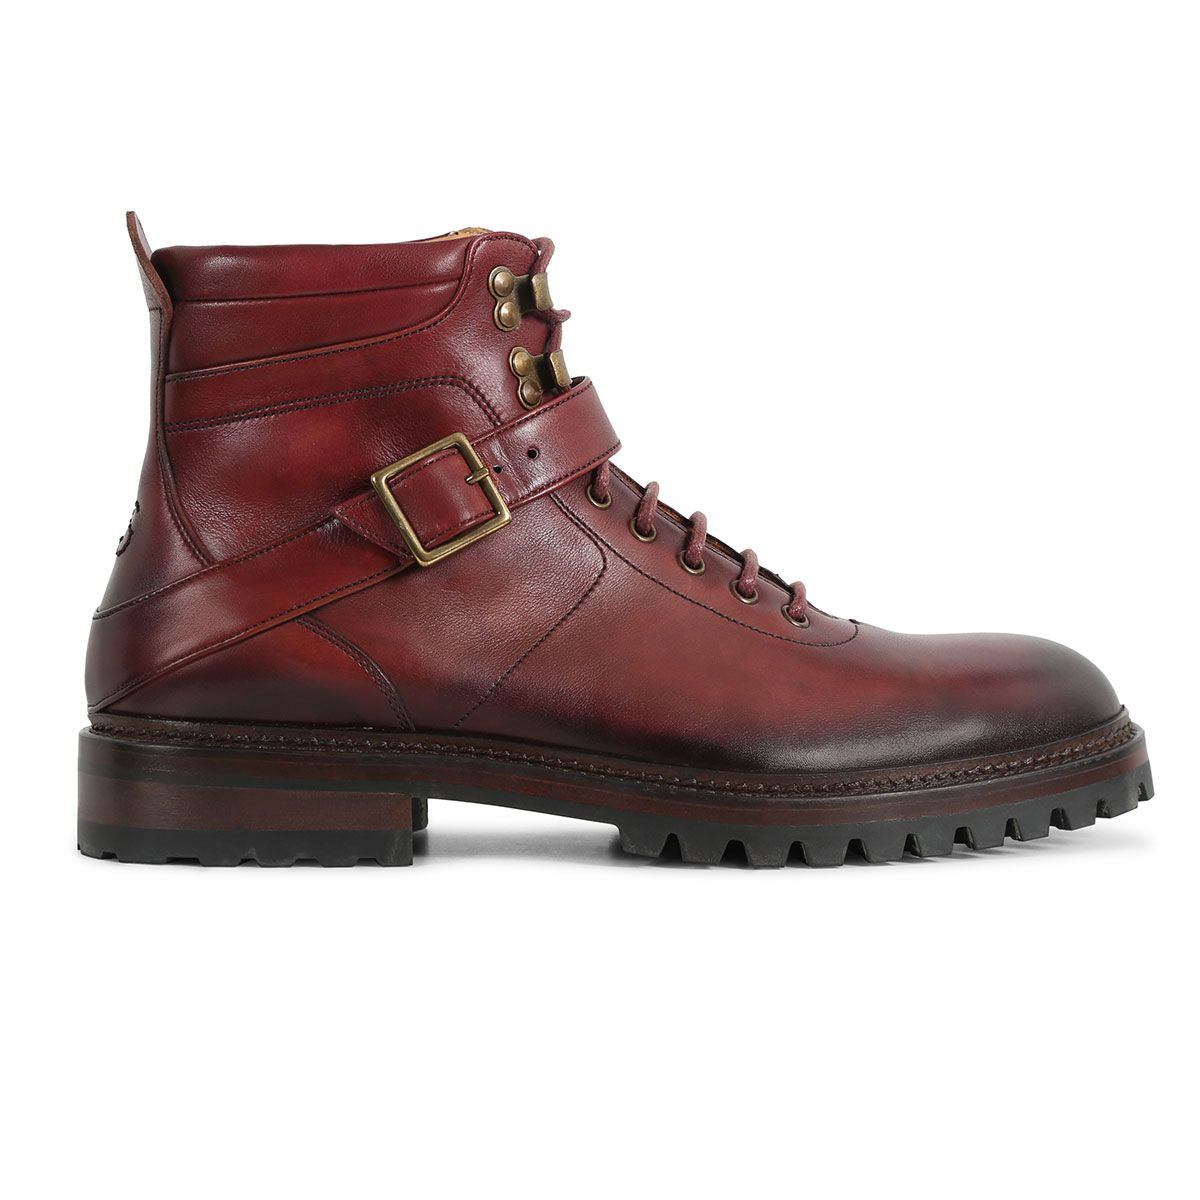 907e46c0ab1 Apricale Burgundy - Calf Leather Hiker Boot by Oliver Sweeney